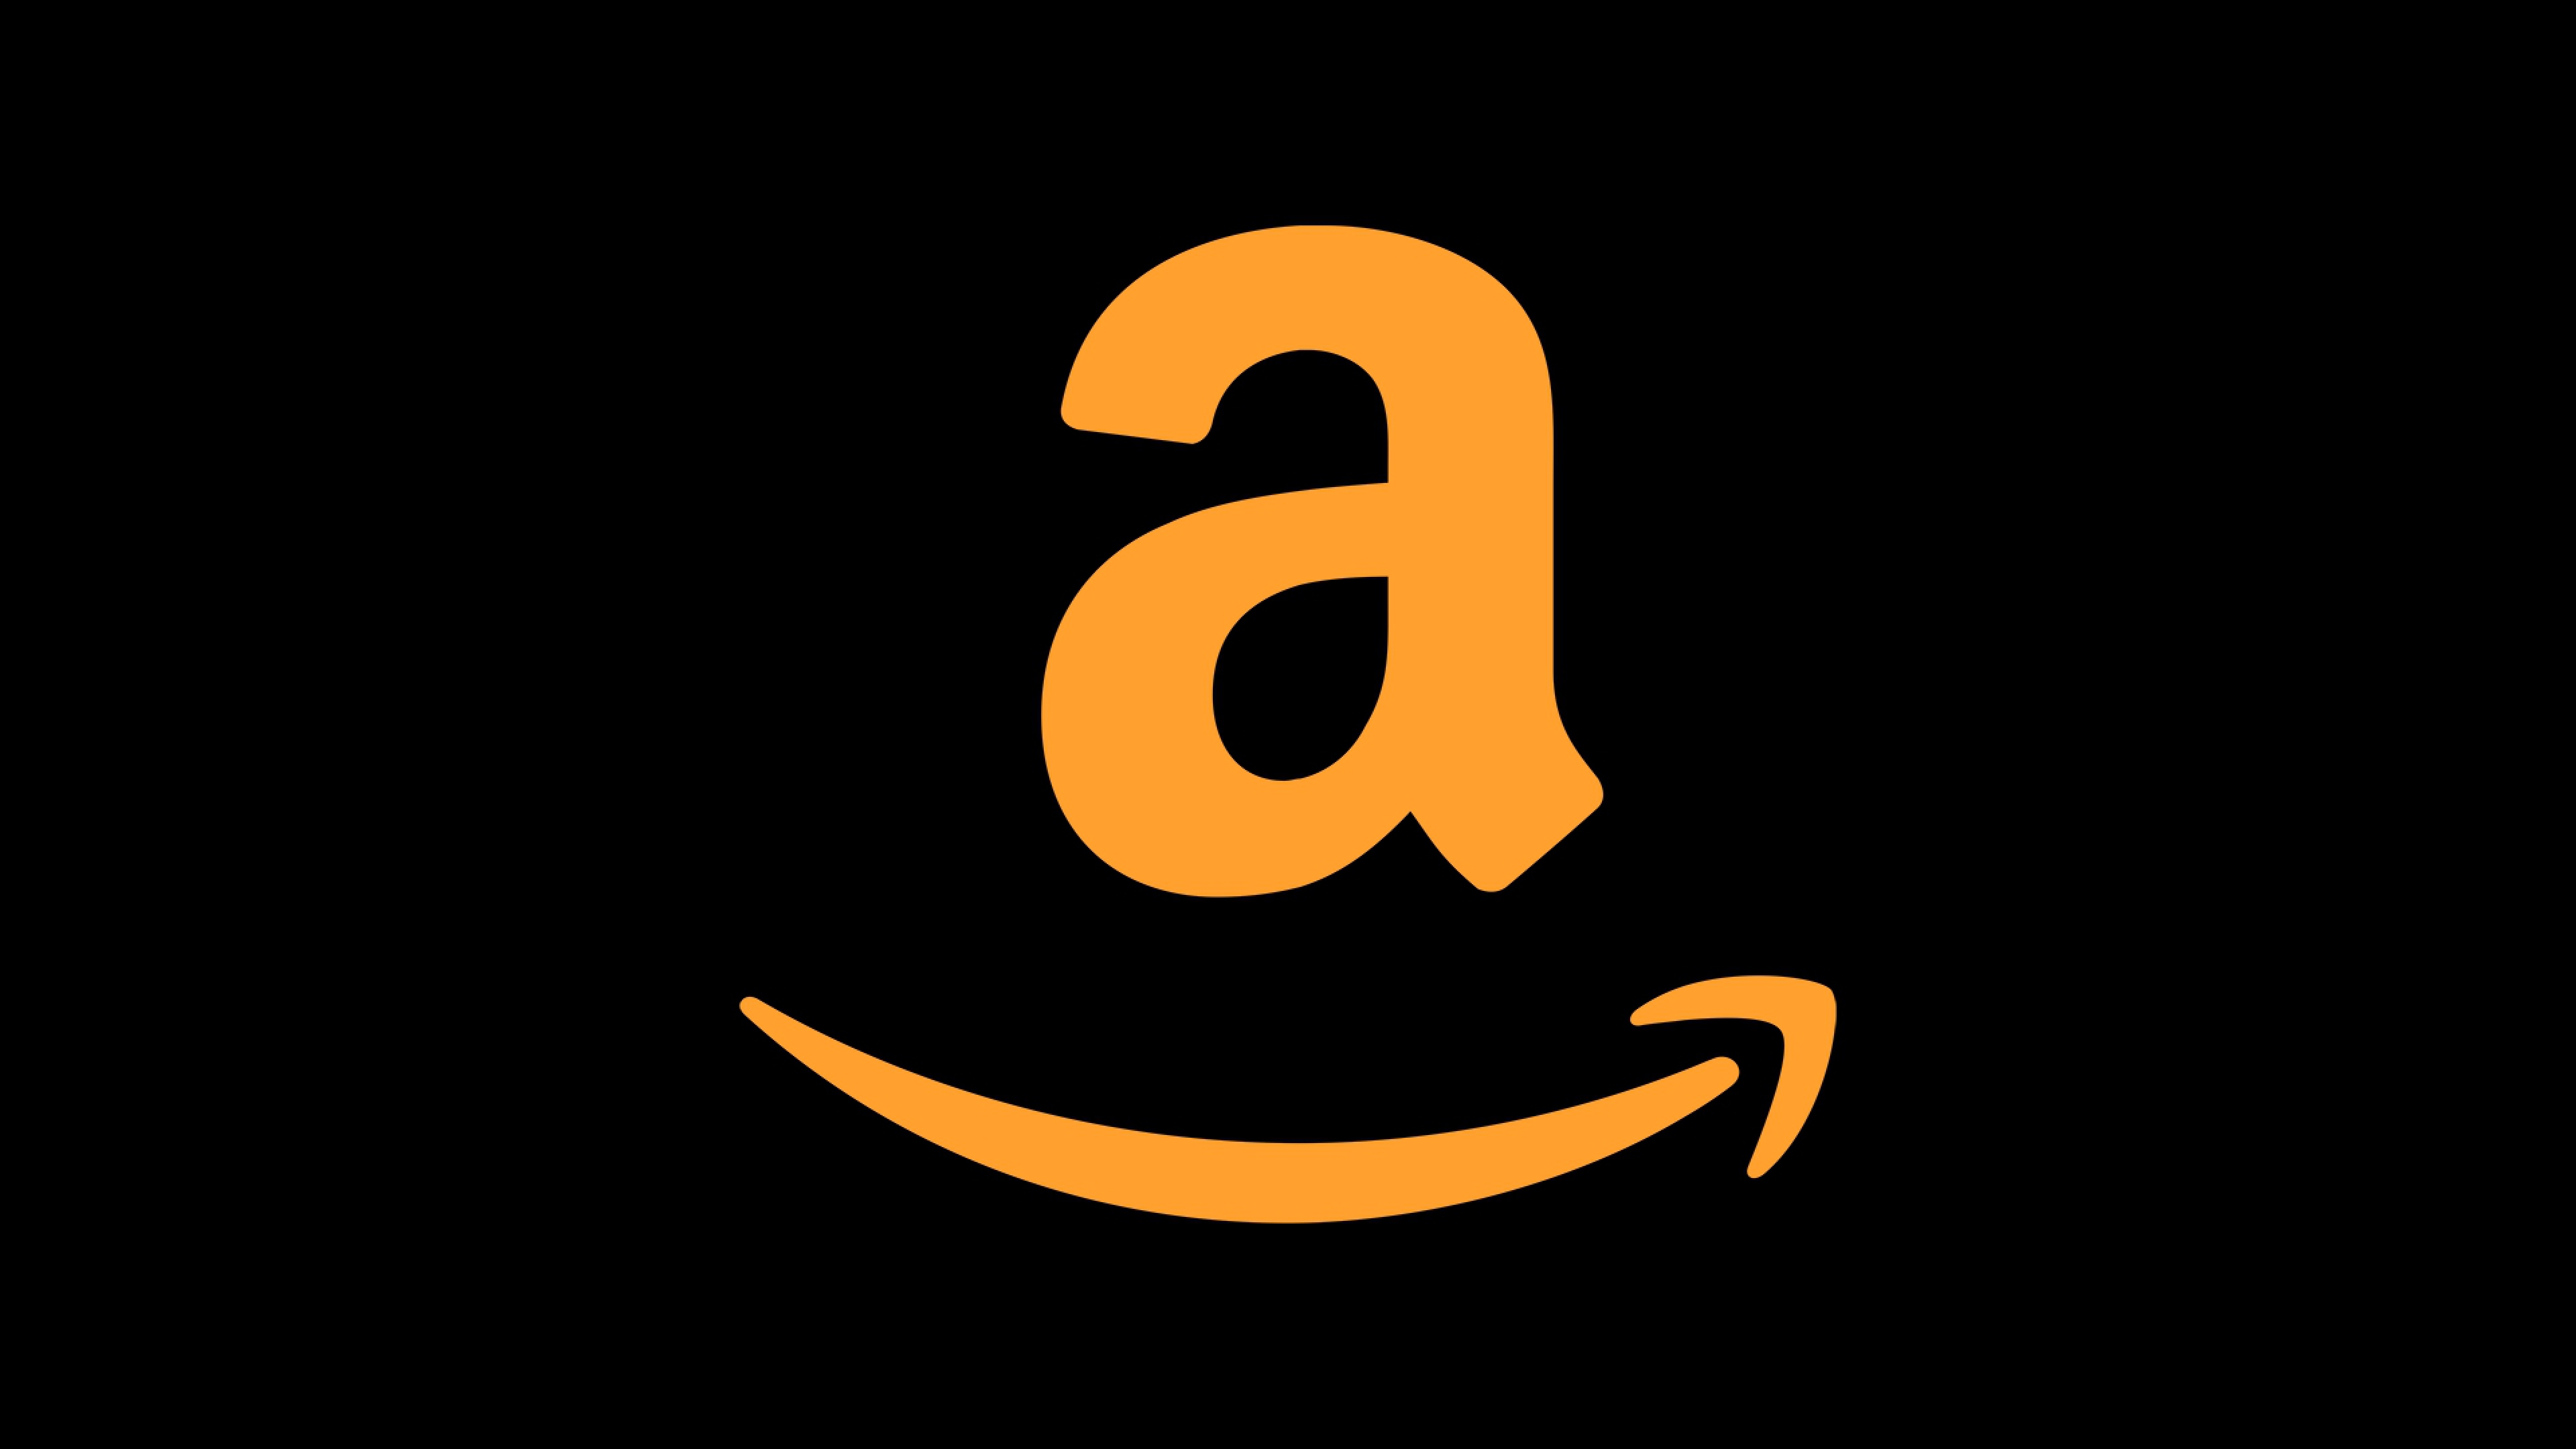 amazon 4k logo  hd logo  4k wallpapers  images Cowboys Logo EPS Costco Wholesale Logo Vector